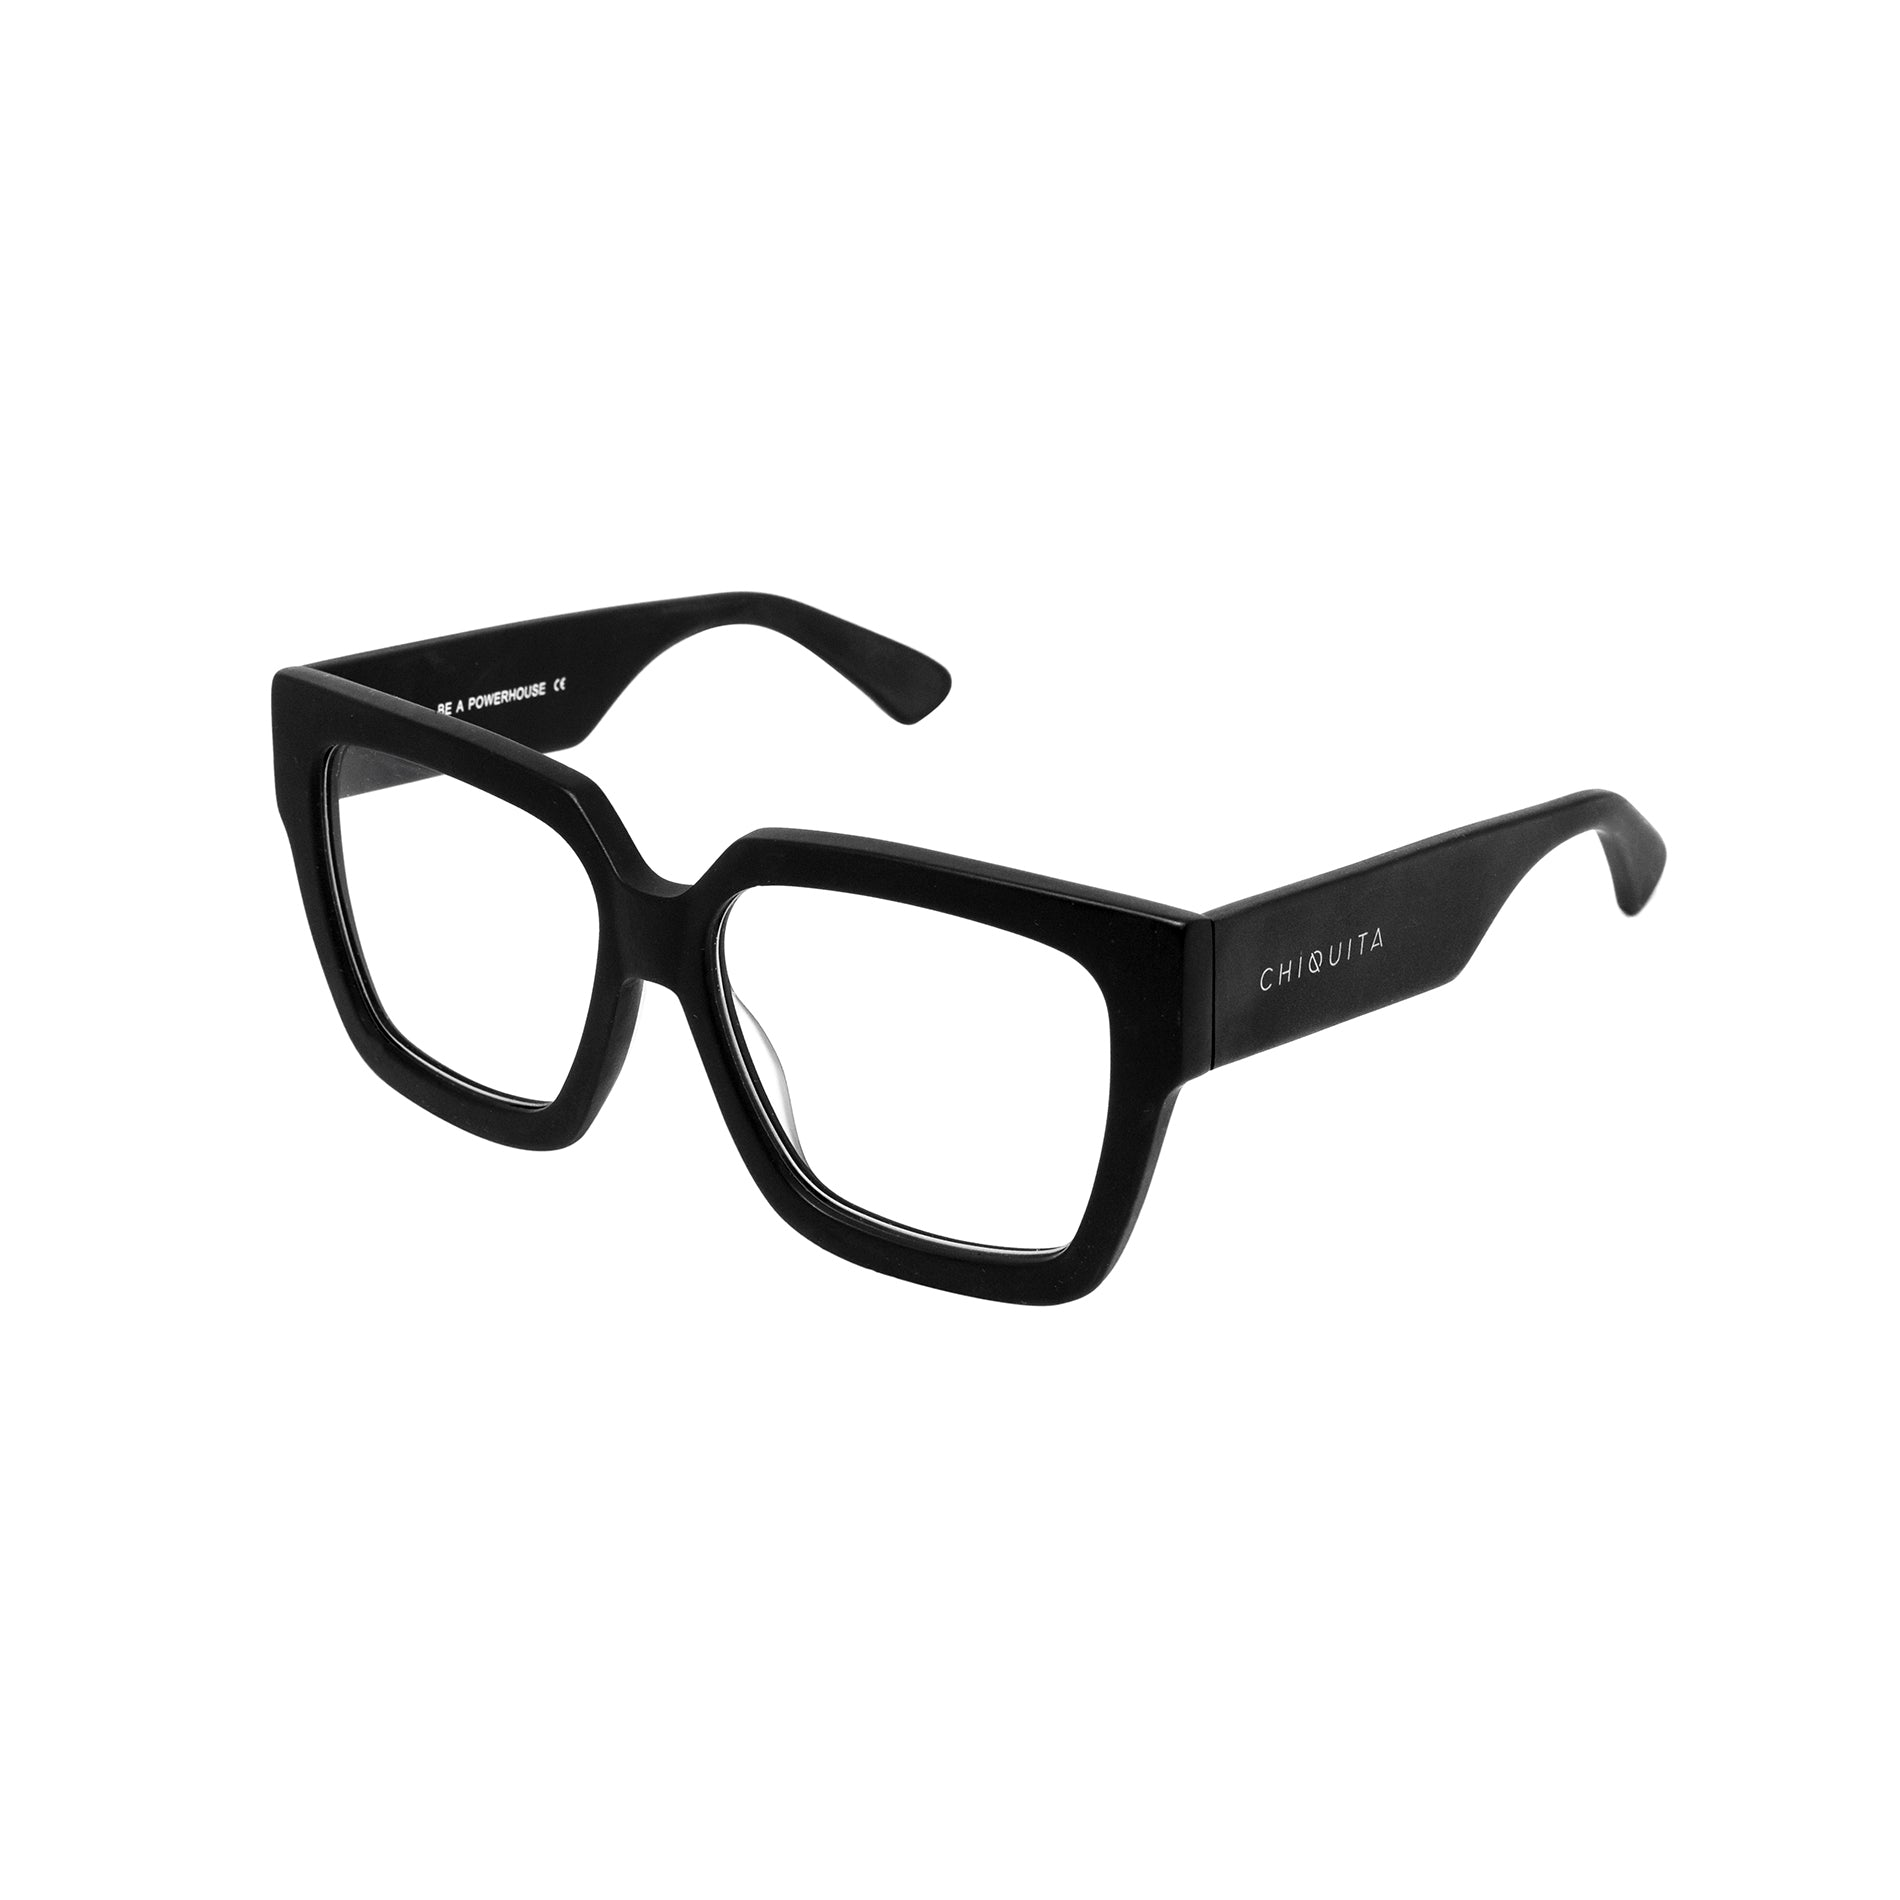 POWERHOUSE Black - Blue Light Eyewear by Chiquita